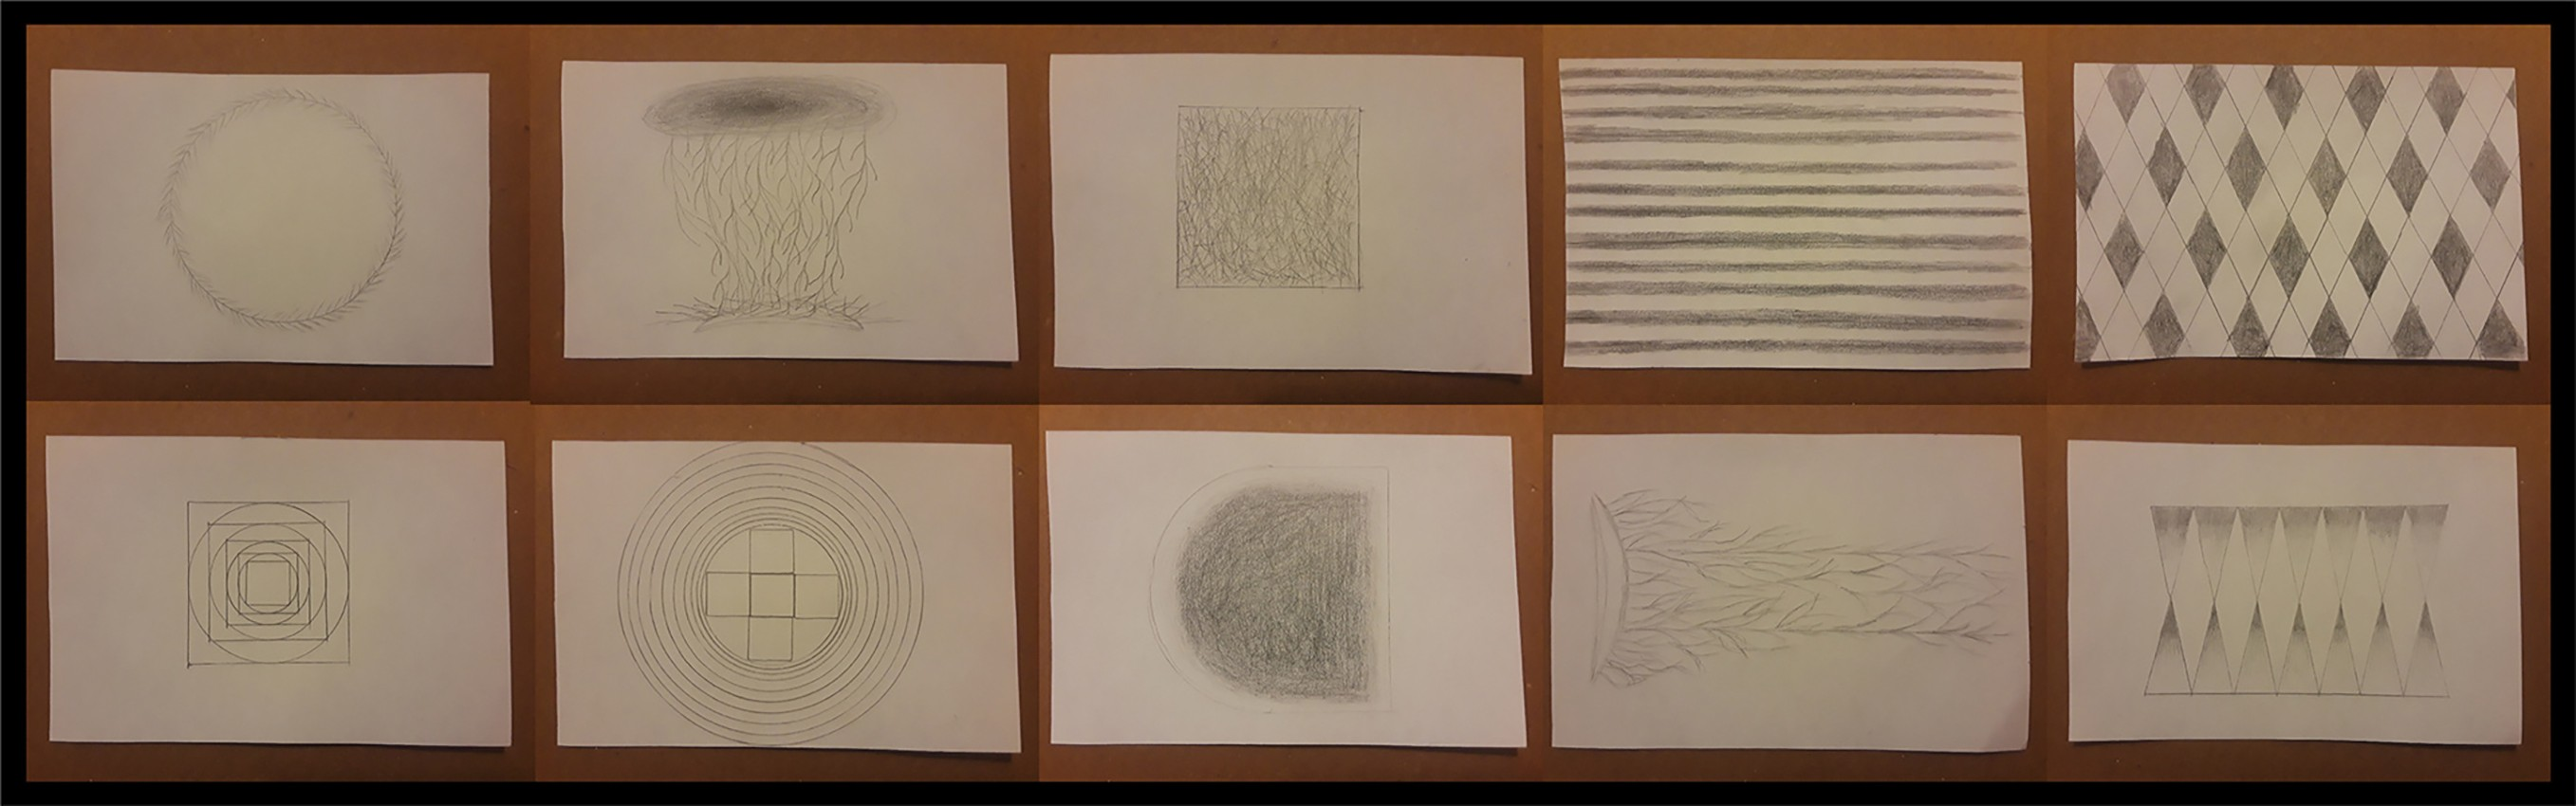 Collage of 10 images of a pencil drawing designs on small notepad paper